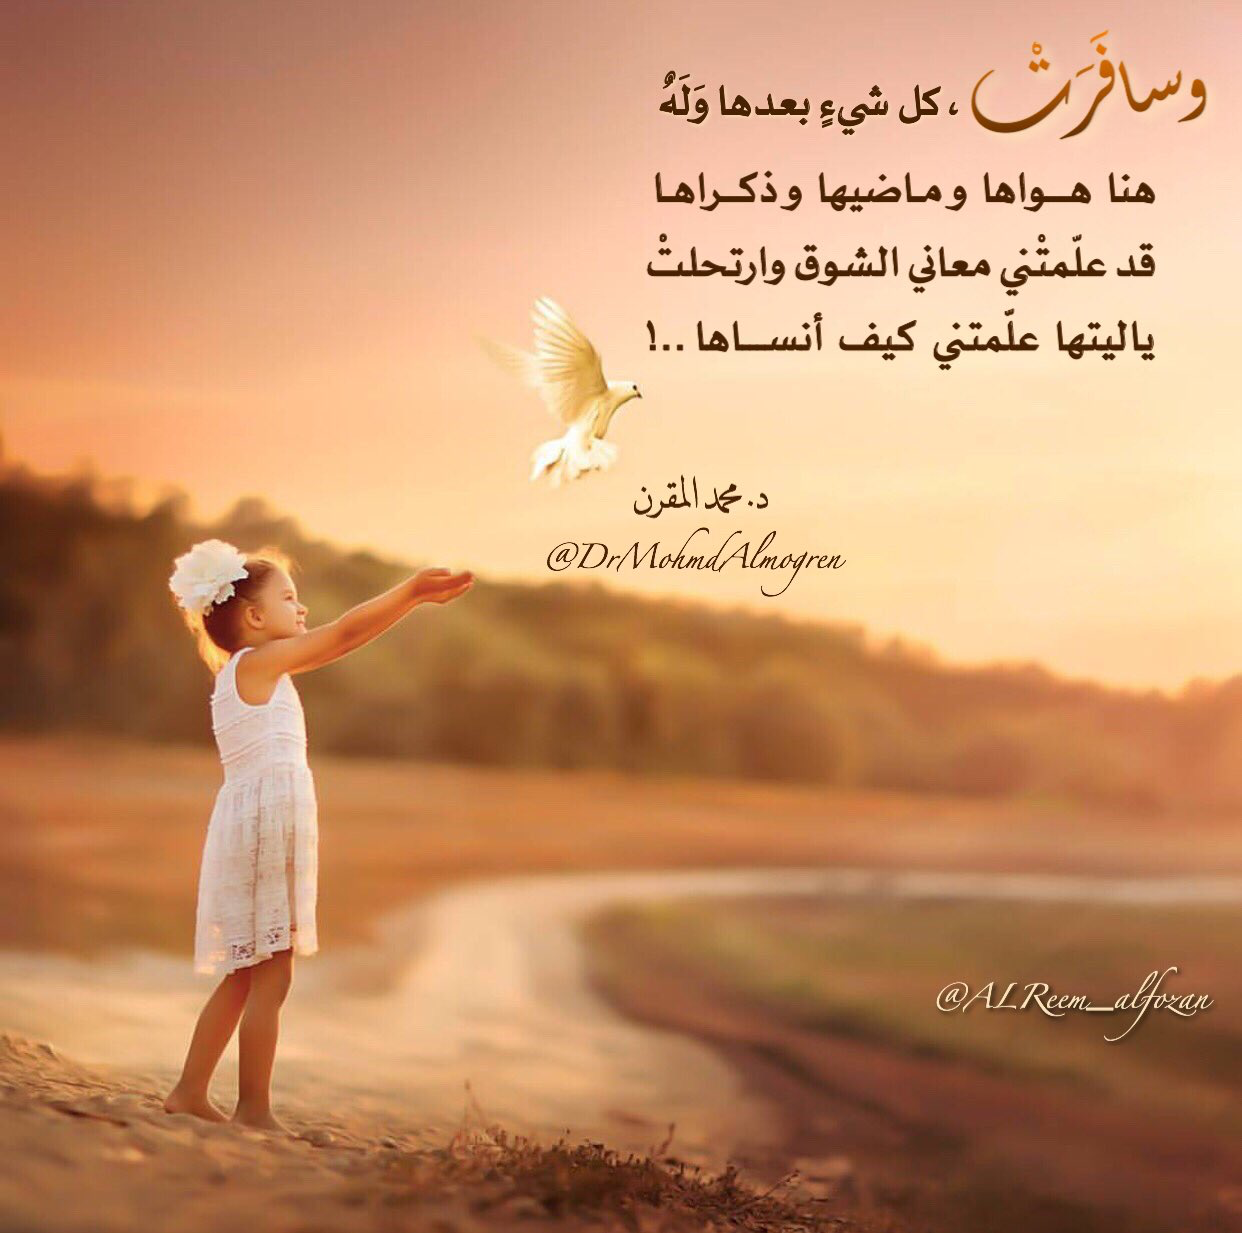 Pin By Abeer K On روائع محمد المقرن Sweet Words Inspirational Quotes Love Quotes